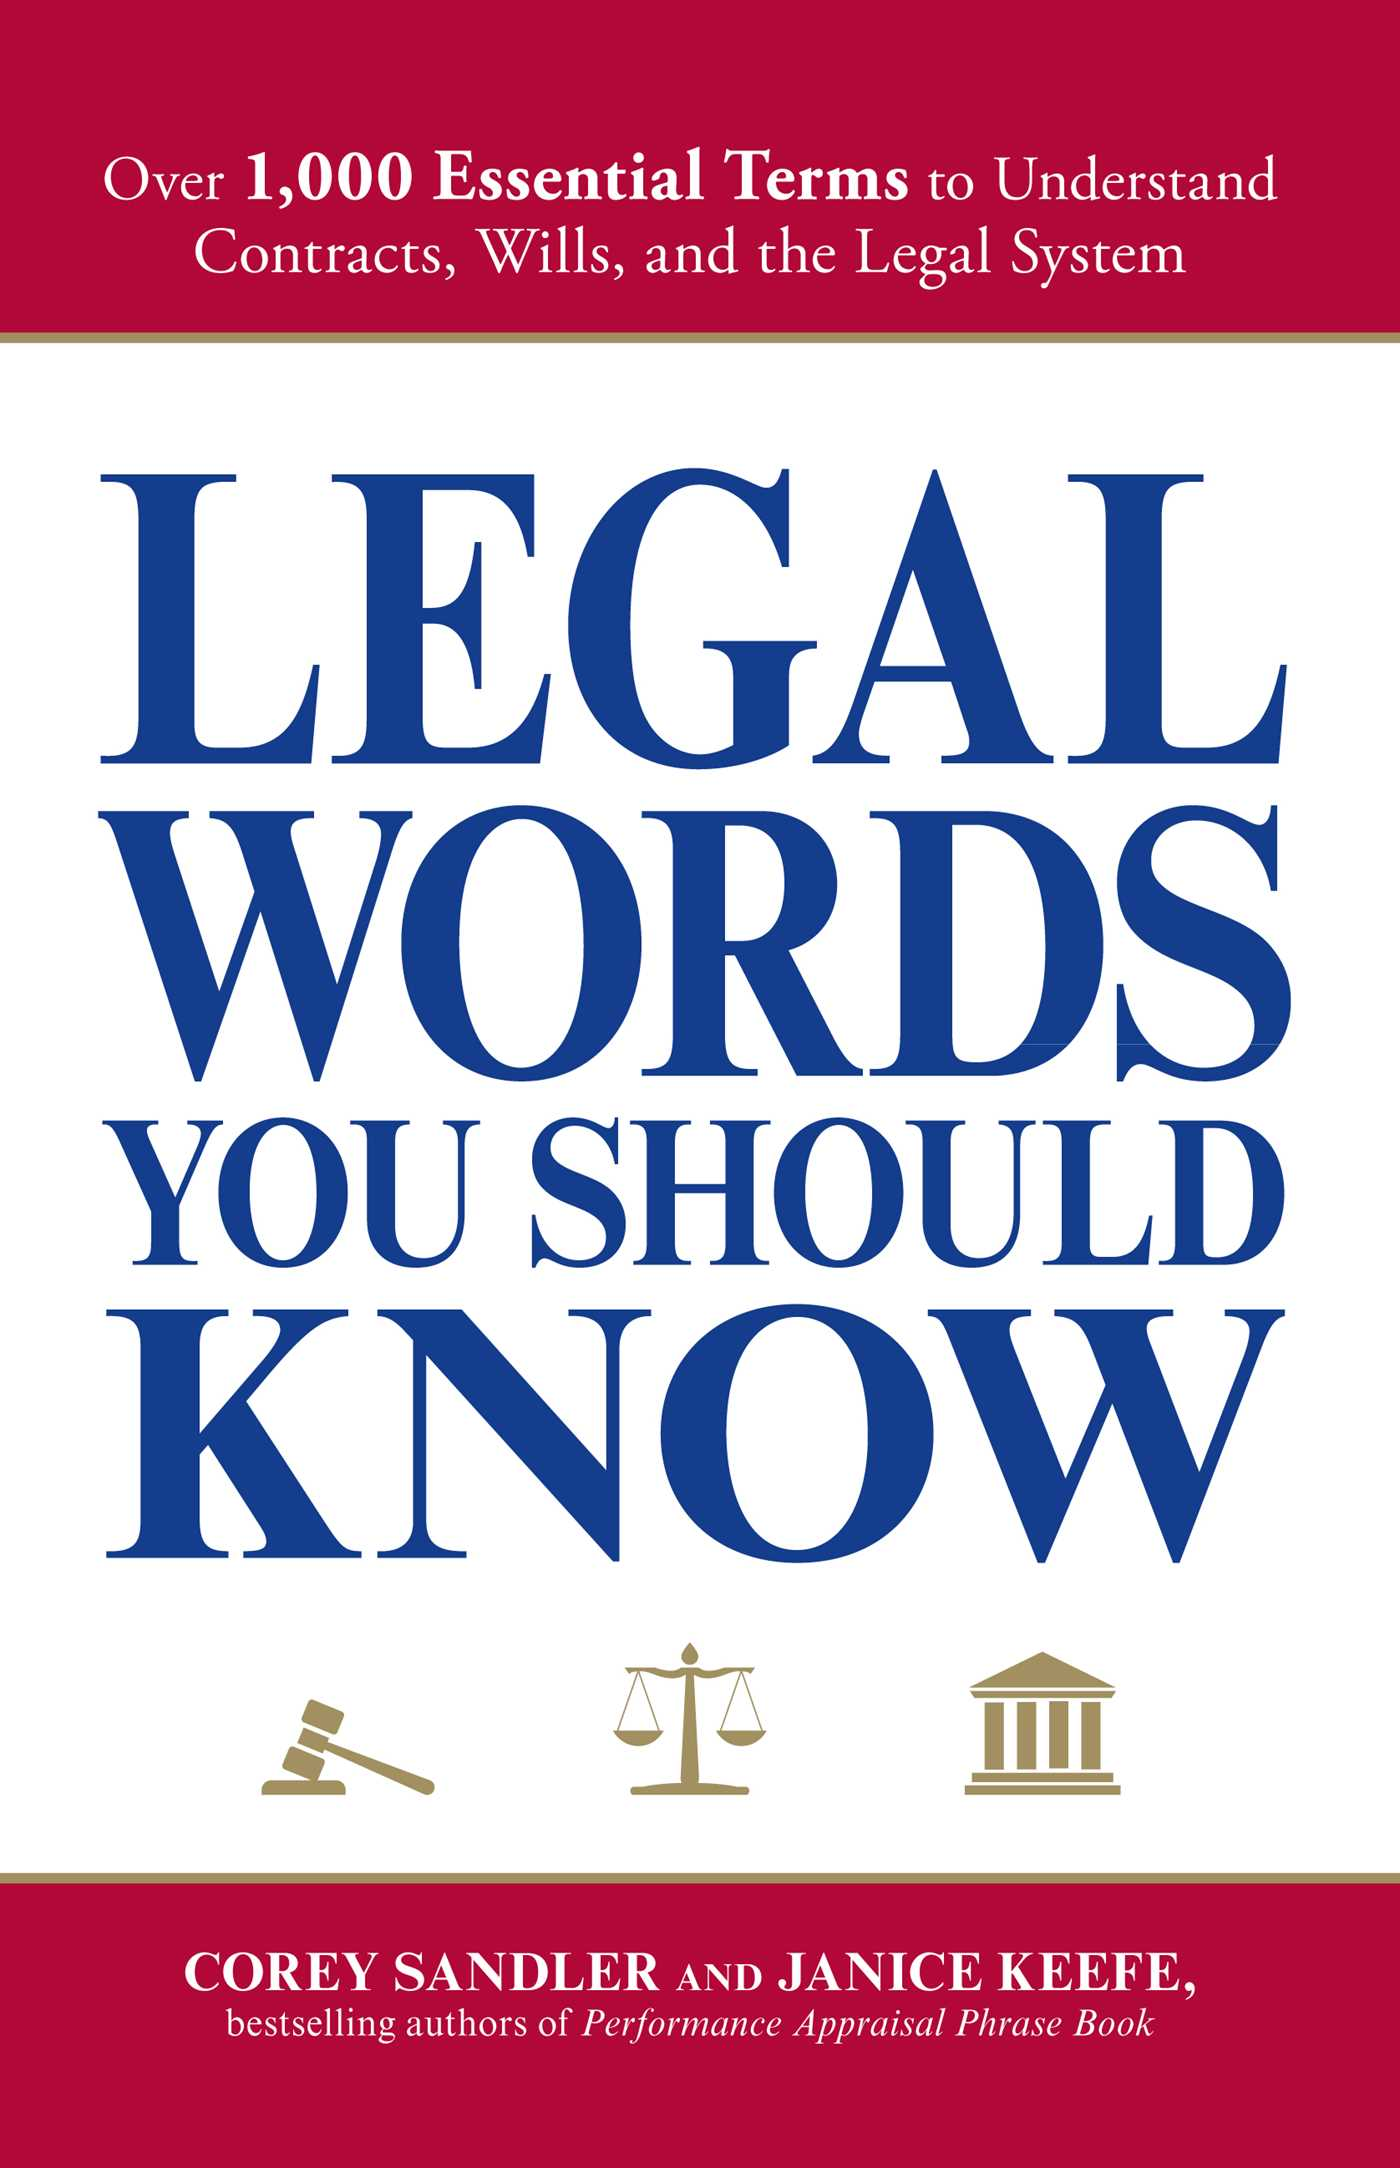 Legal Words You Should Know | Book by Corey Sandler, Janice Keefe ...